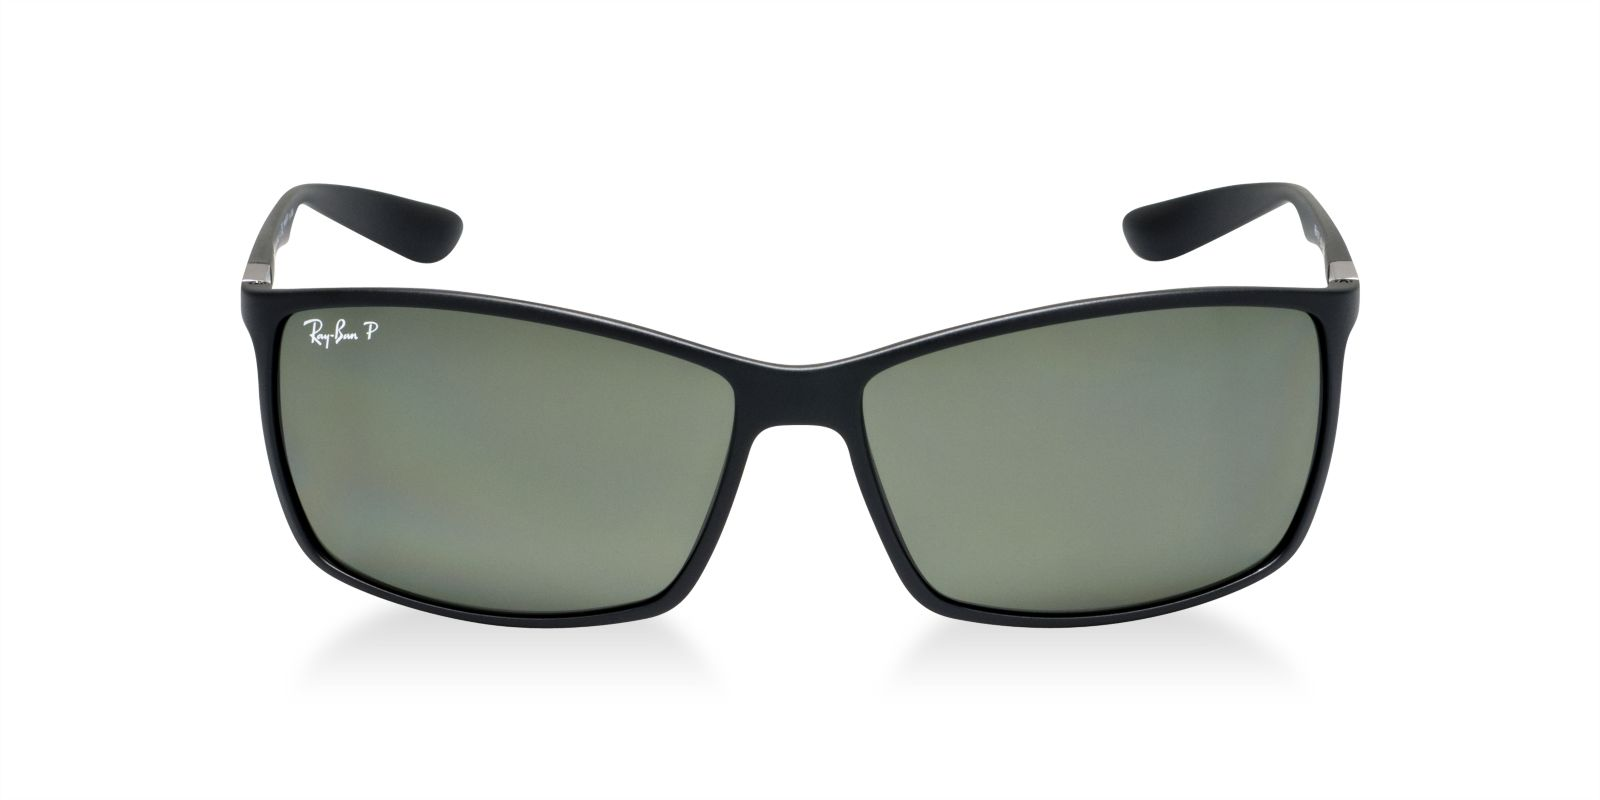 f0bb3638594 Previous  Next. Previous  Next. RAY-BAN RB4179 601S9A POLARIZED BLACK  LITEFORCE SUNGLASSES